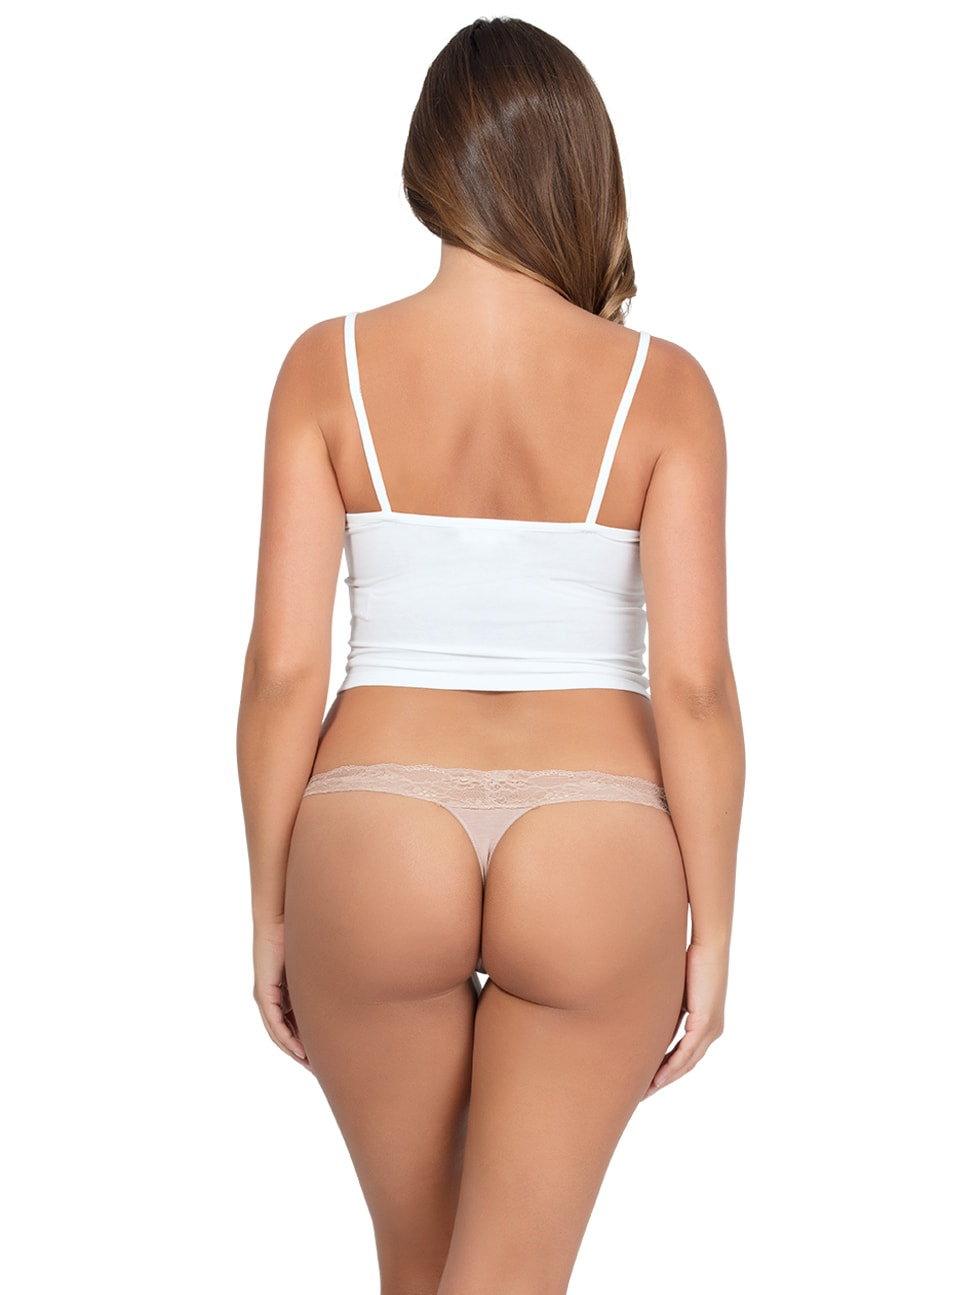 PARFAIT ParfaitPanty SoEssential ThongPP403 Bare Back copy - Parfait Panty So Essential Thong- Bare - PP403